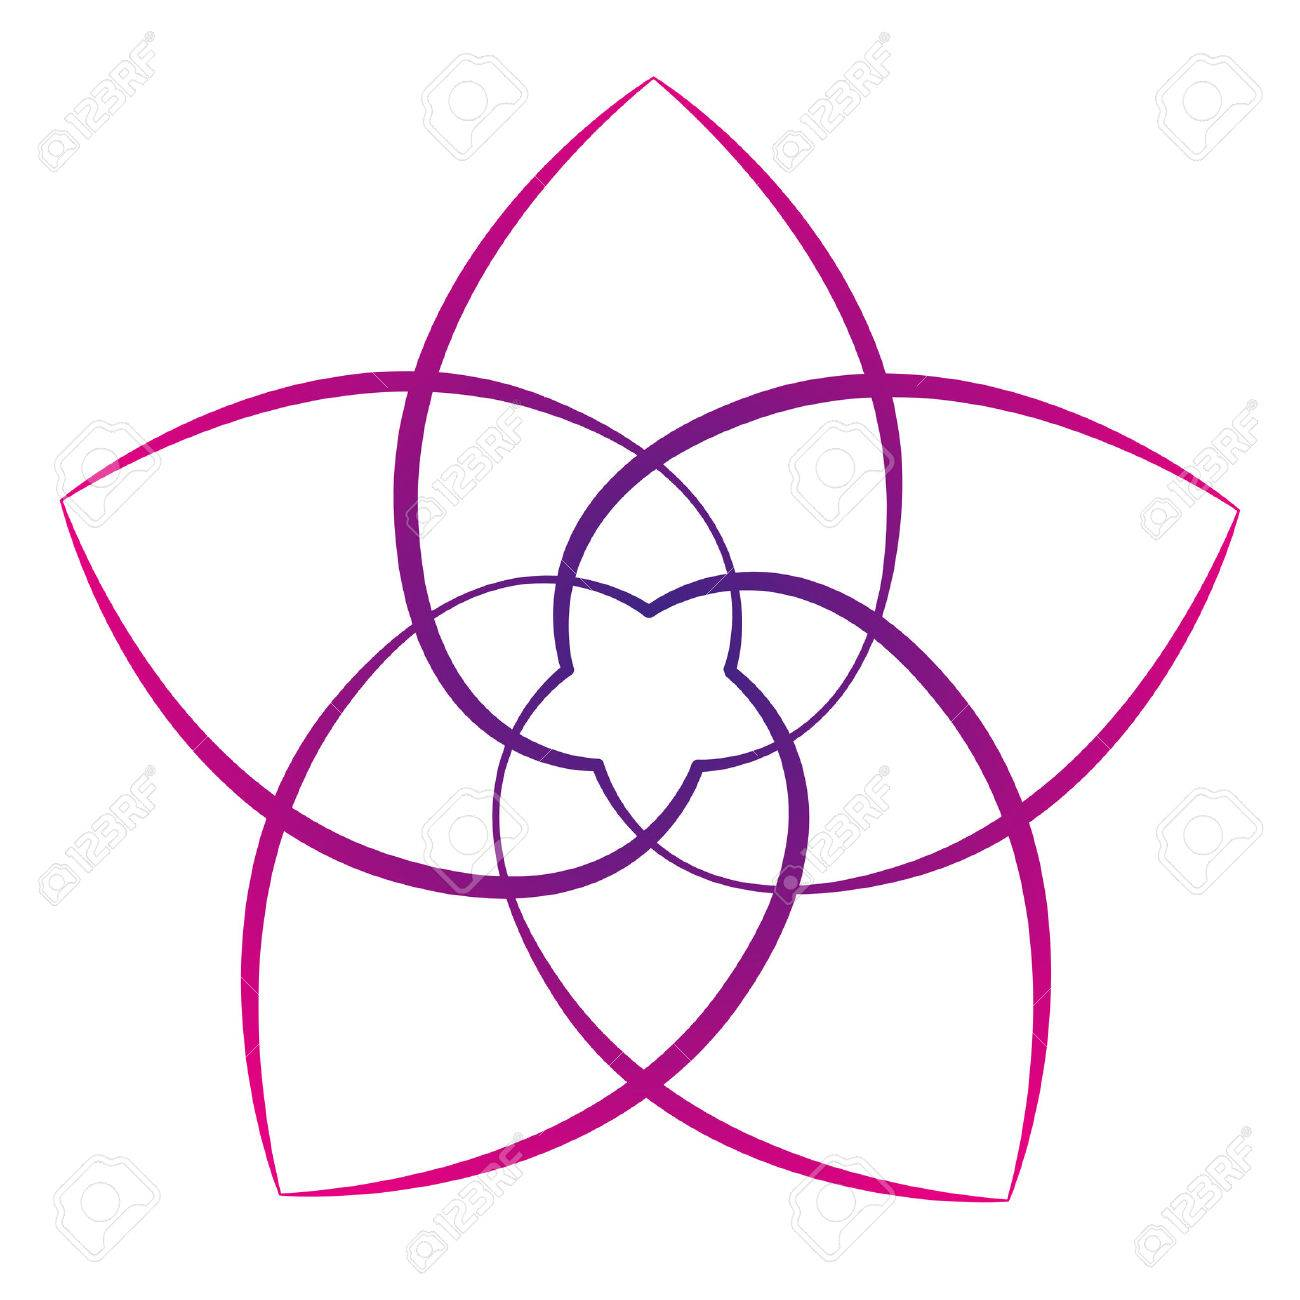 Pink flower of the venus, symbol of love and harmony. Isolated vector illustration on white background. - 31055573